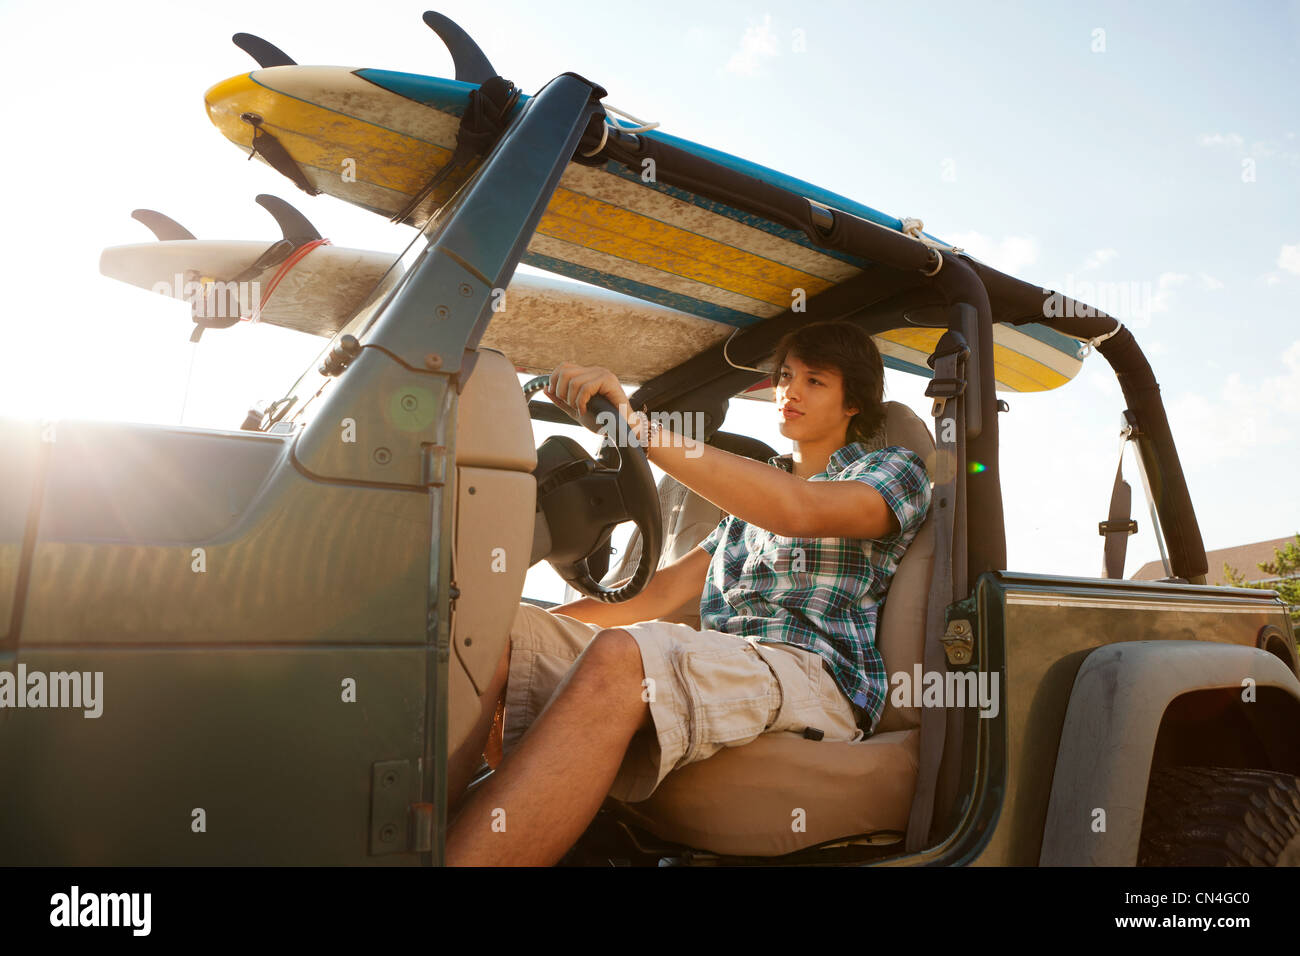 Teenager driving jeep with surfboards - Stock Image